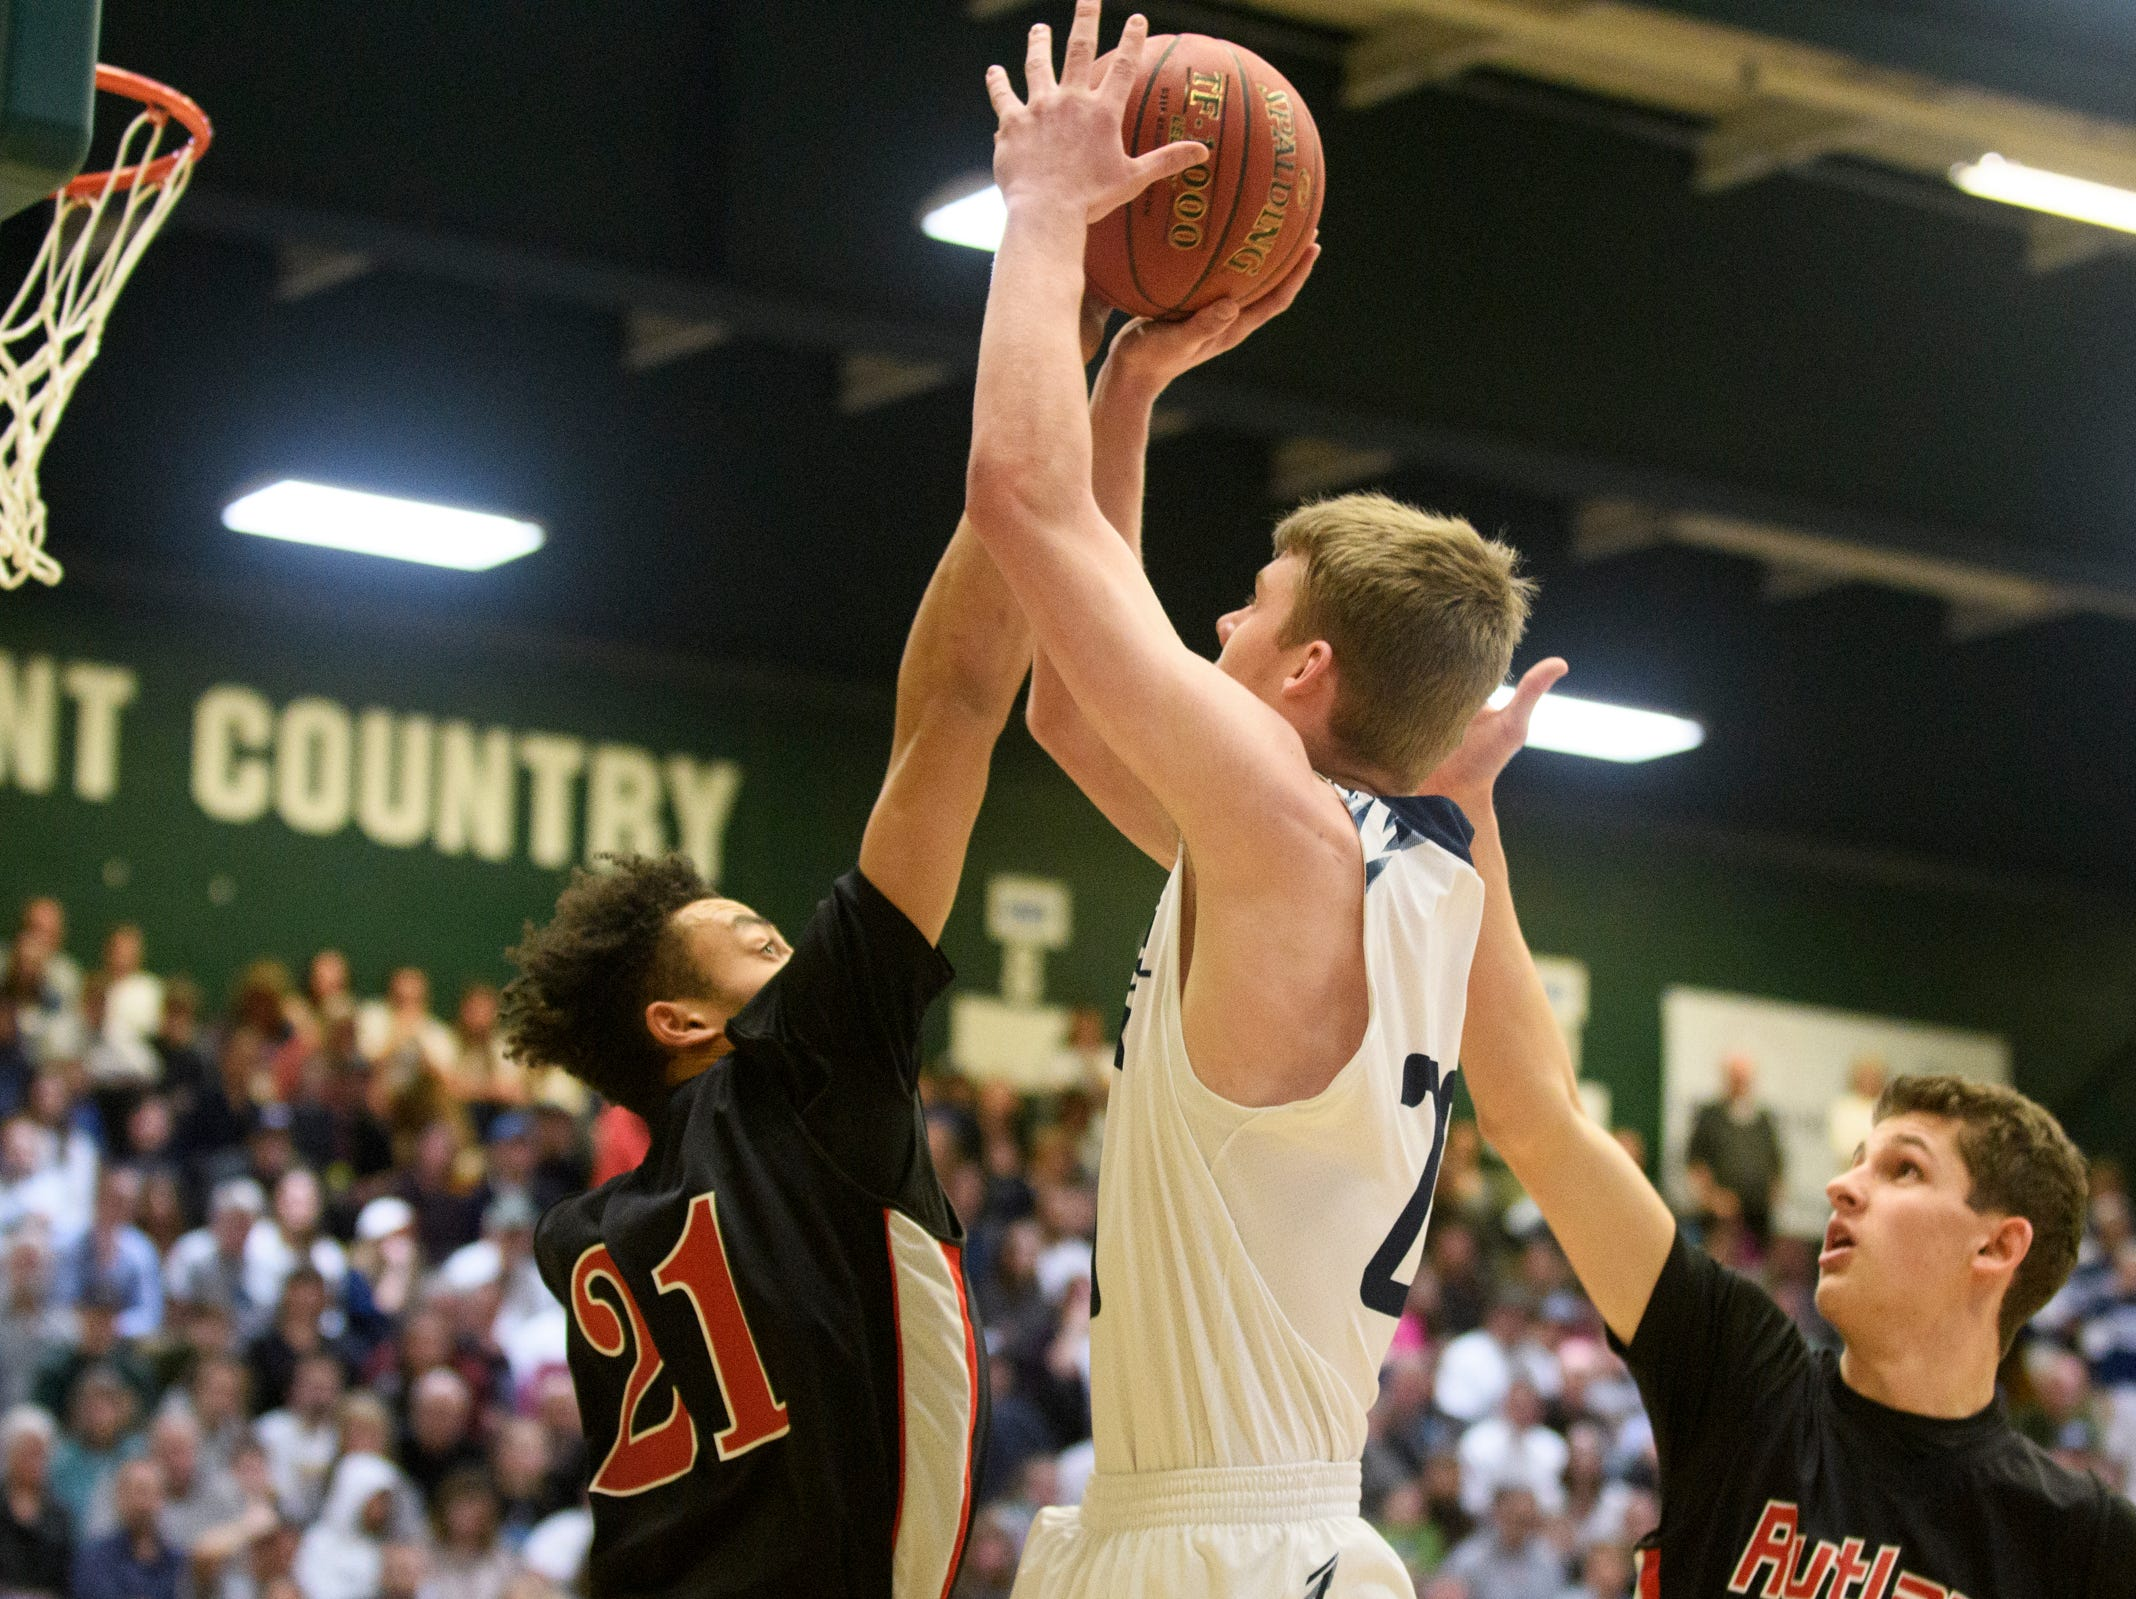 MMU's Connor Philbrick (20) leaps to take a shot over Rutland's Jameson Evans (21) during the boys DI semi final basketball game between the Rutland Raiders and the Mount Mansfield Cougars at Patrick Gym on Monday night March 11, 2019 in Burlington, Vermont.